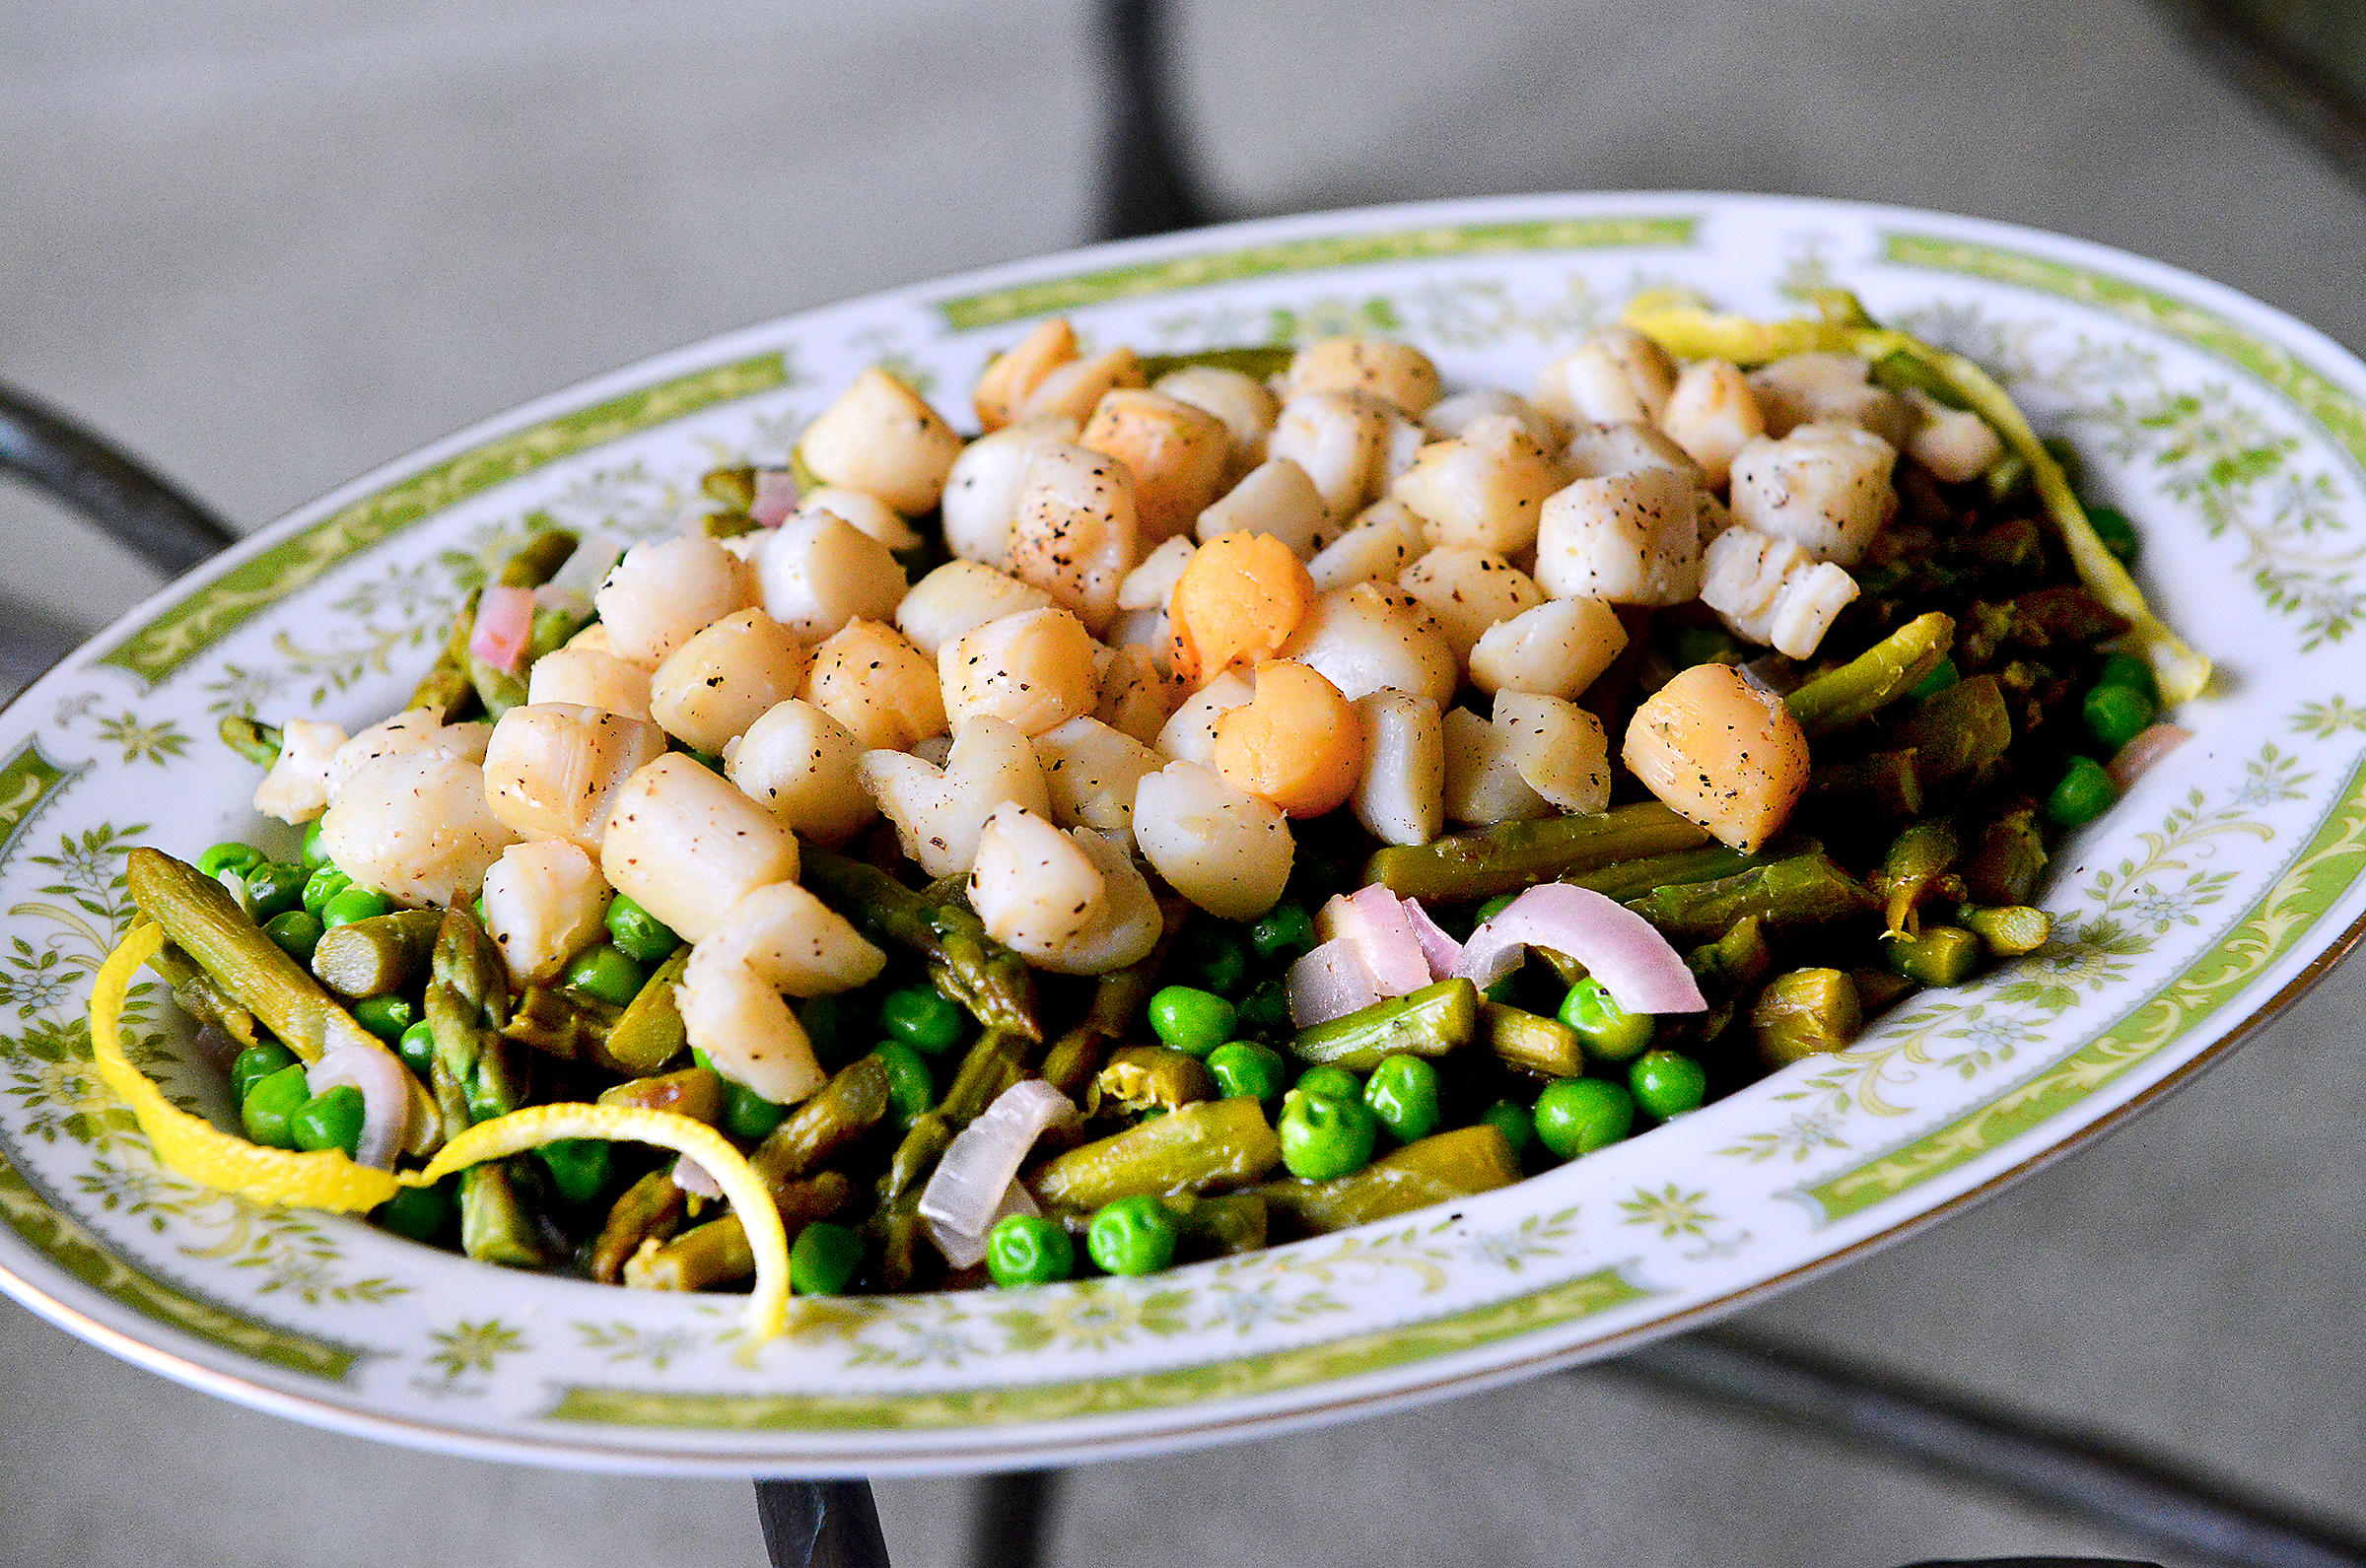 20170215lf-Seafood01 Flash cook scallops on both sides and serve them with shallots, peas, asparagus and a white wine-lemony sauce.